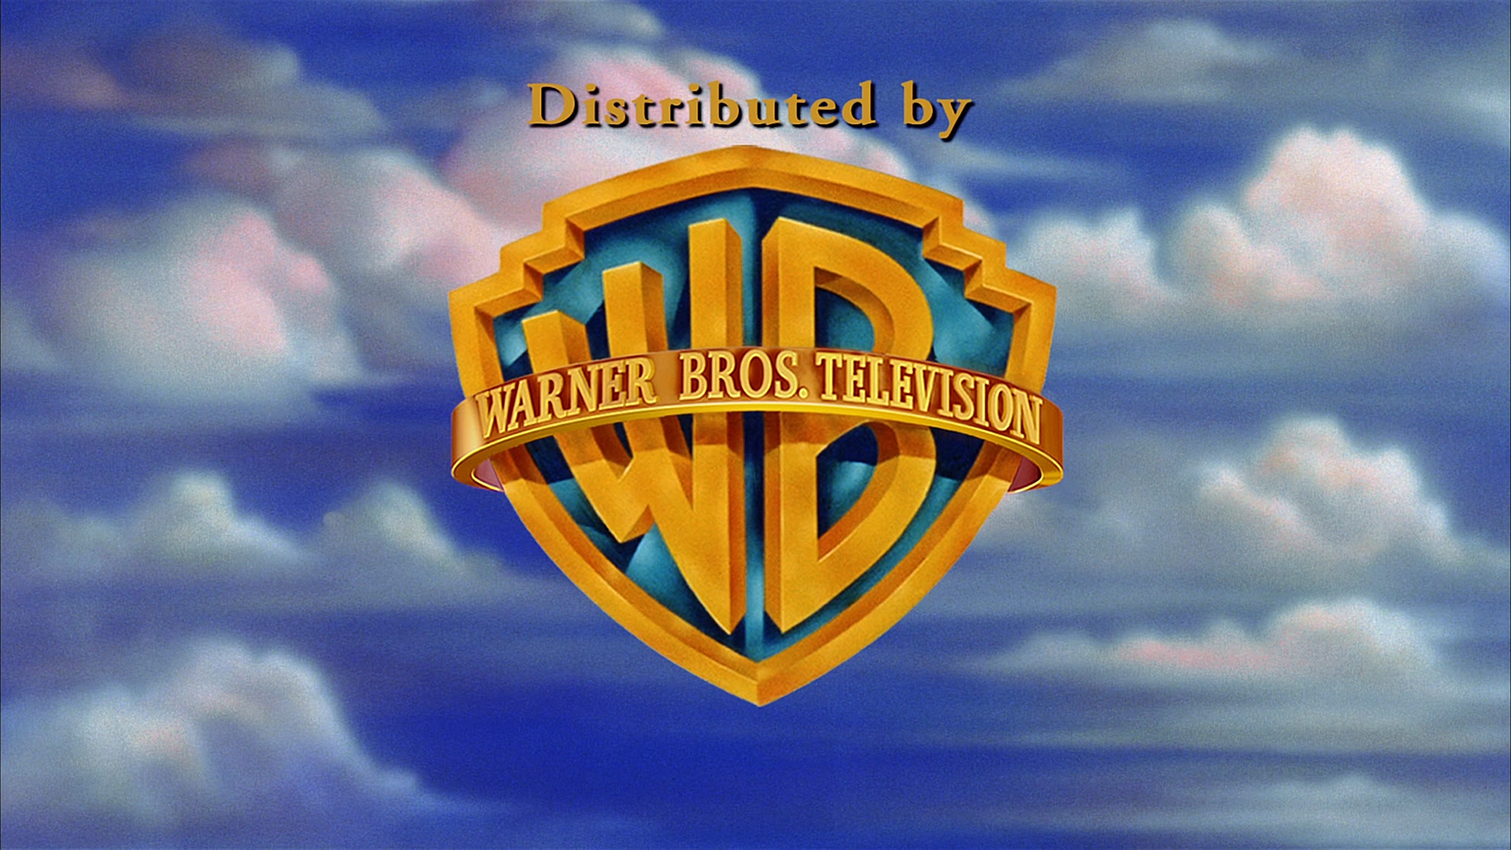 Warner Bros. Television Distribution (2003) [16:9, No URL]